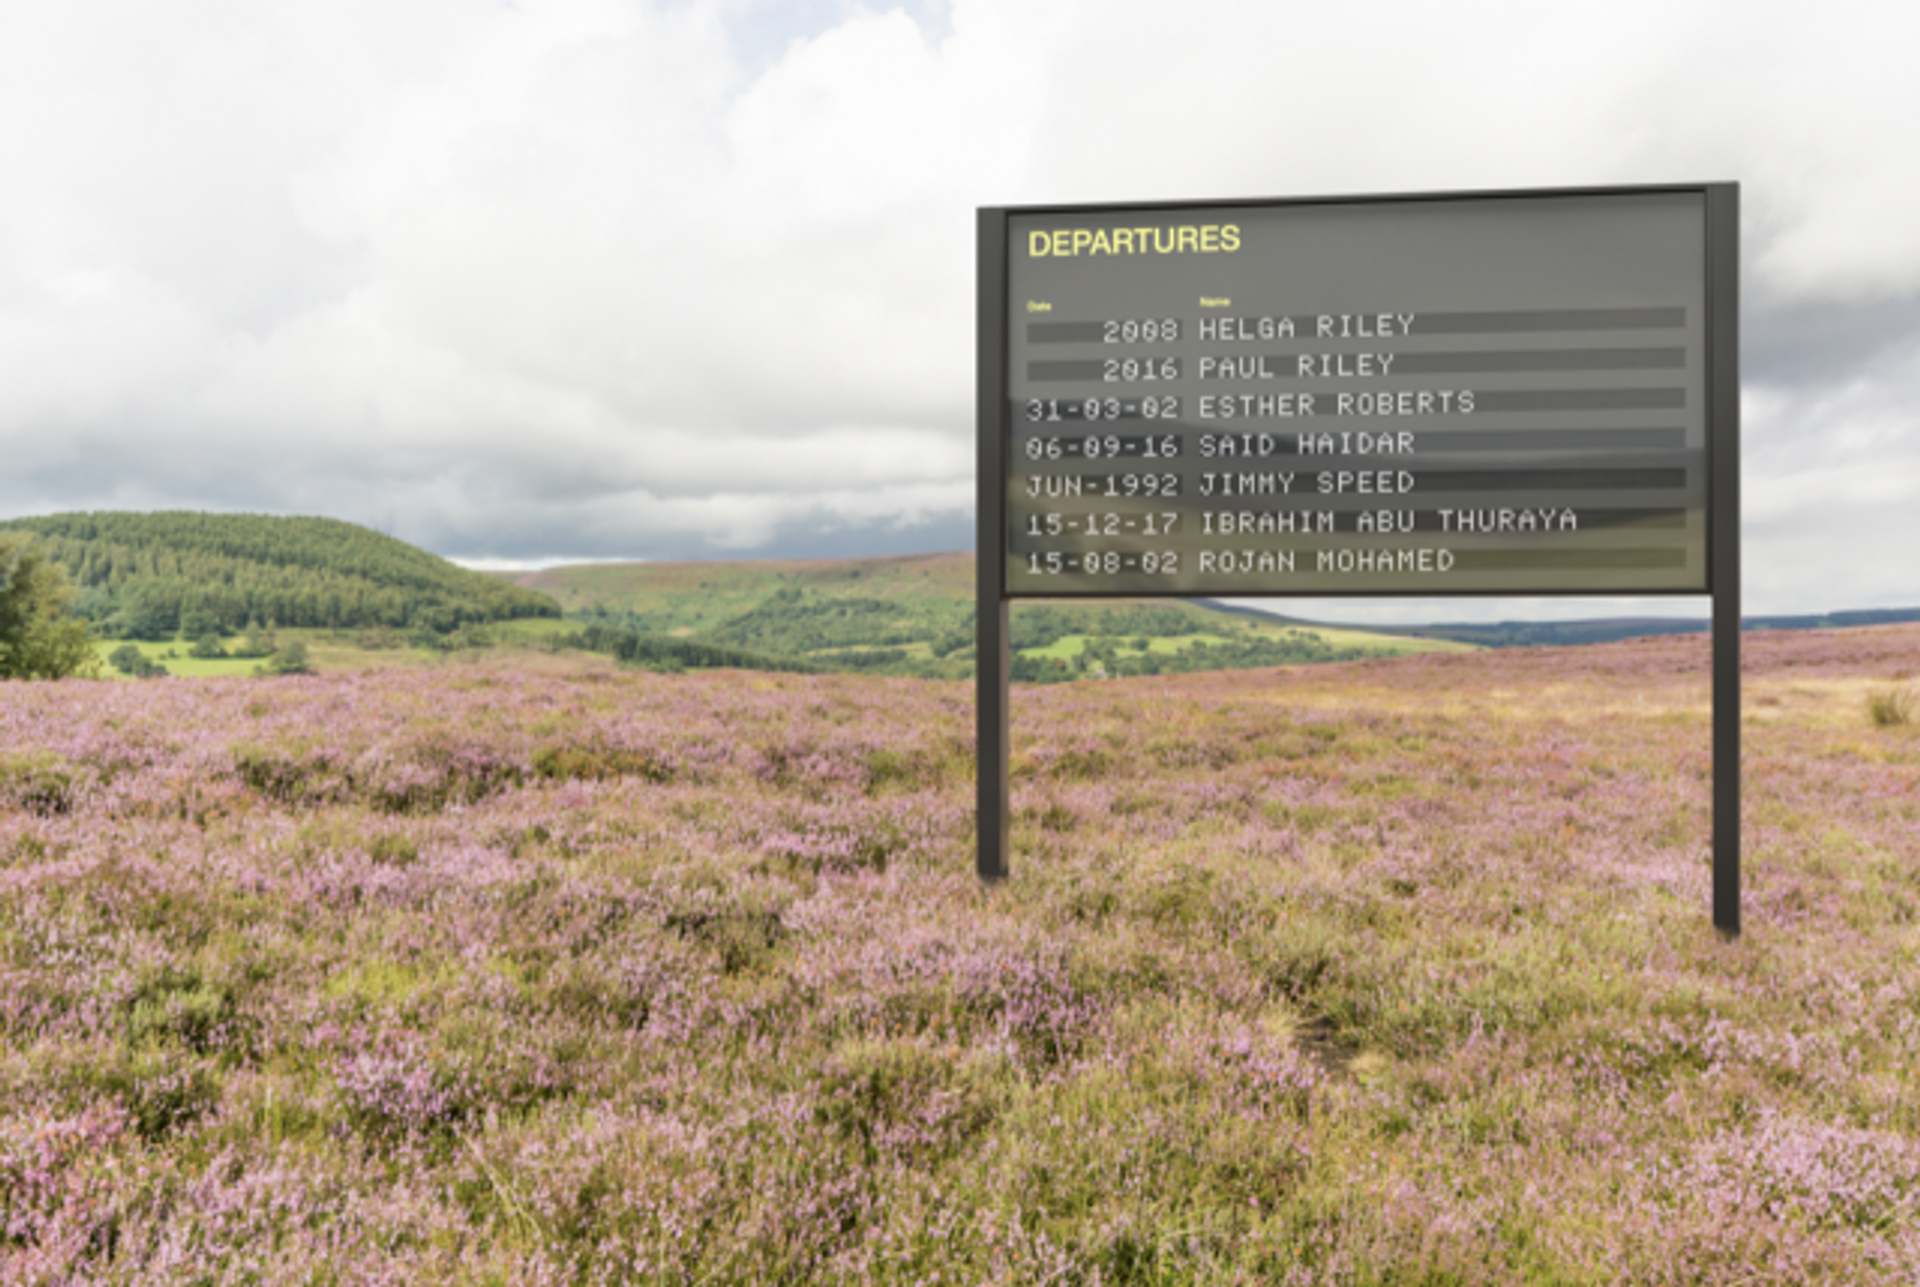 The public artwork Arrivals and Departures by Yara and Davina, which tours the UK this year, is produced by Artsadmin and is supported by Creative Europe Photo: Tom McClaughlan in collaboration with the artists